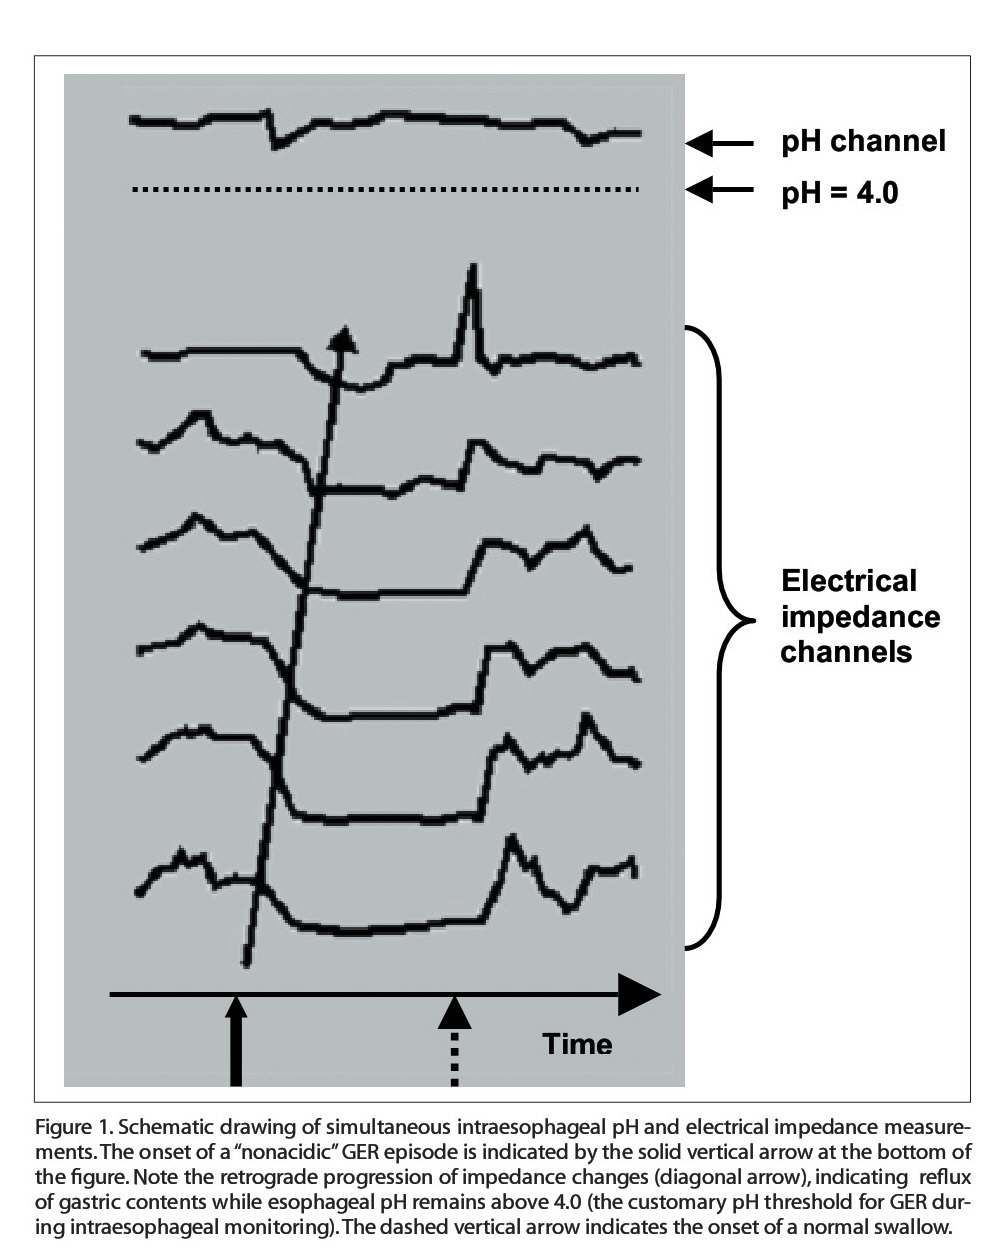 """Figure 1. Schematic drawing of simultaneous intraesophageal pH and electrical impedance measurements. The onset of a """"nonacid ic"""" GER episode is indicated by the solid vertical arrow at the bottom of the figure. Note the retrograde progression of impedance changes (diagonal arrow), indicating reflux of gastric contents while esophageal pH remains above 4.0 (the customary pH threshold for GER during intraesophageal monitori ng).The dashed vertical arrow indicates the onset of a normal swallow."""